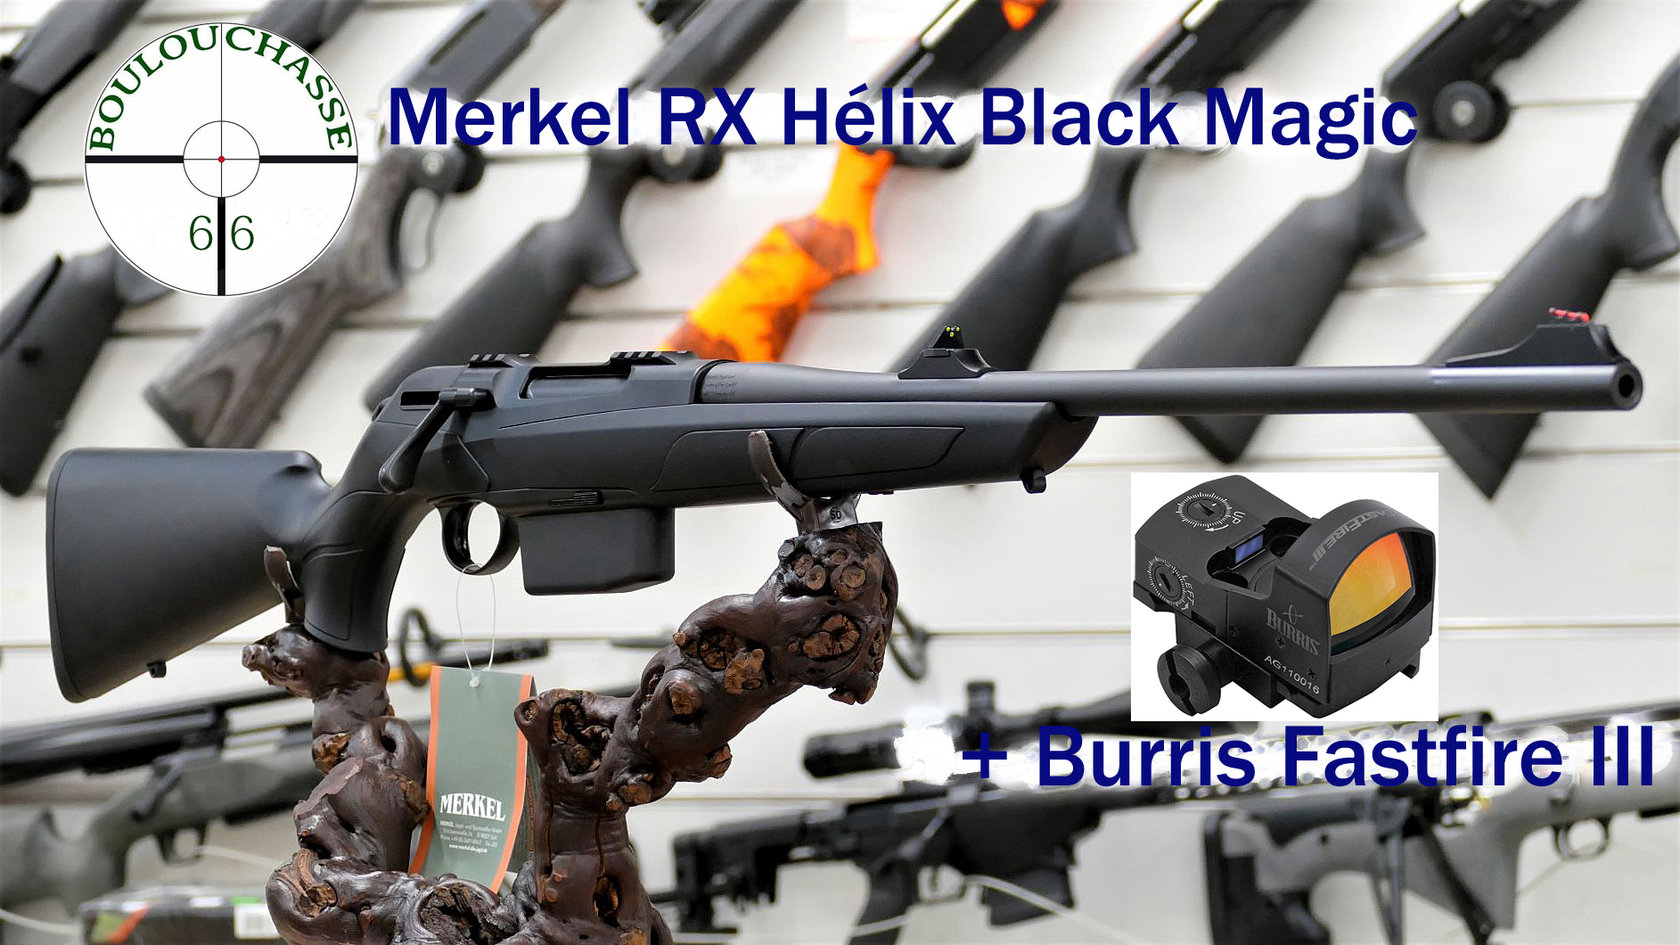 Merkel RX Hélix Black Magic